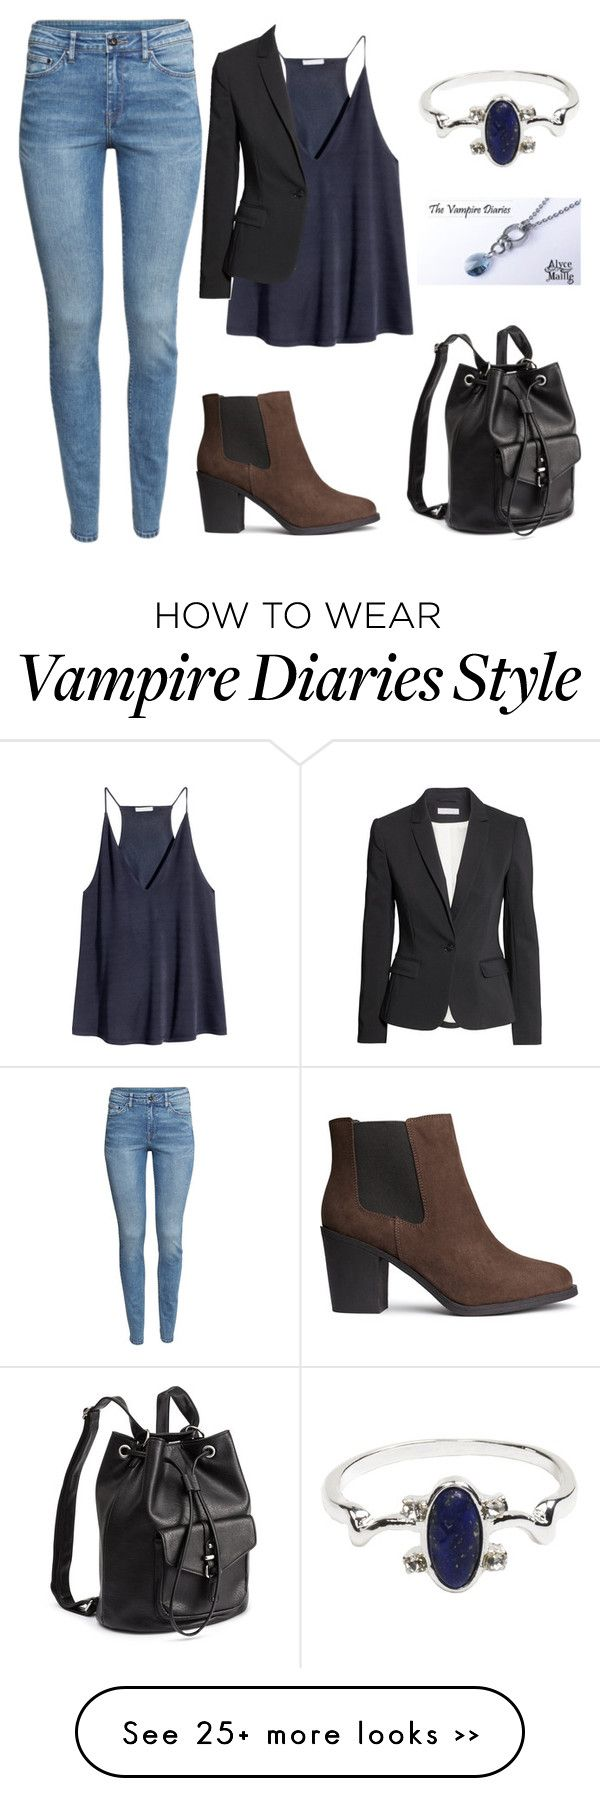 """Untitled #297"" by samantha1-a on Polyvore featuring H&M"